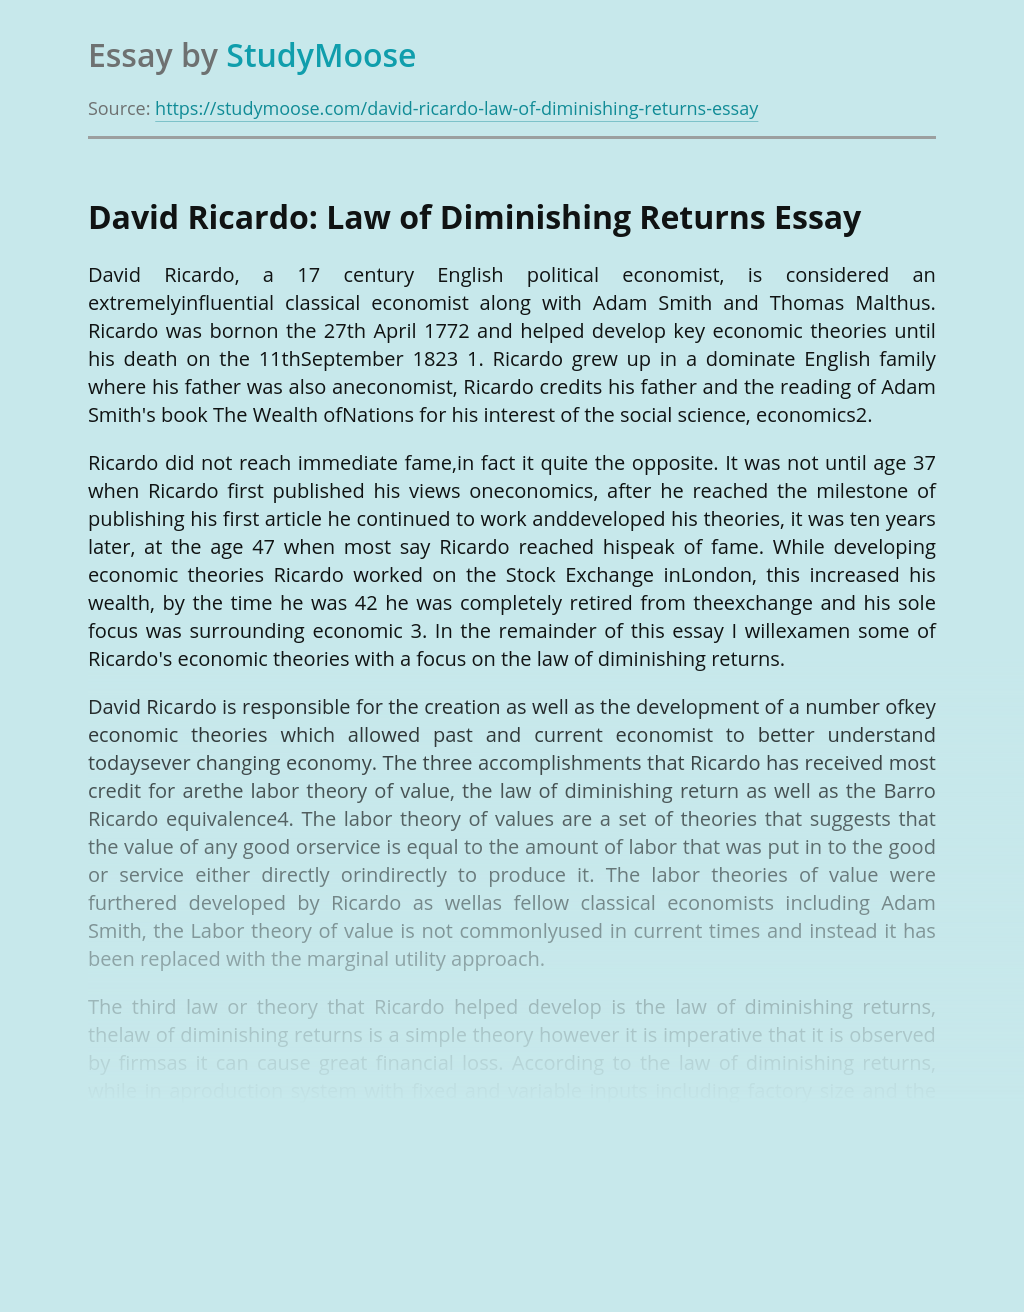 David Ricardo: Law of Diminishing Returns